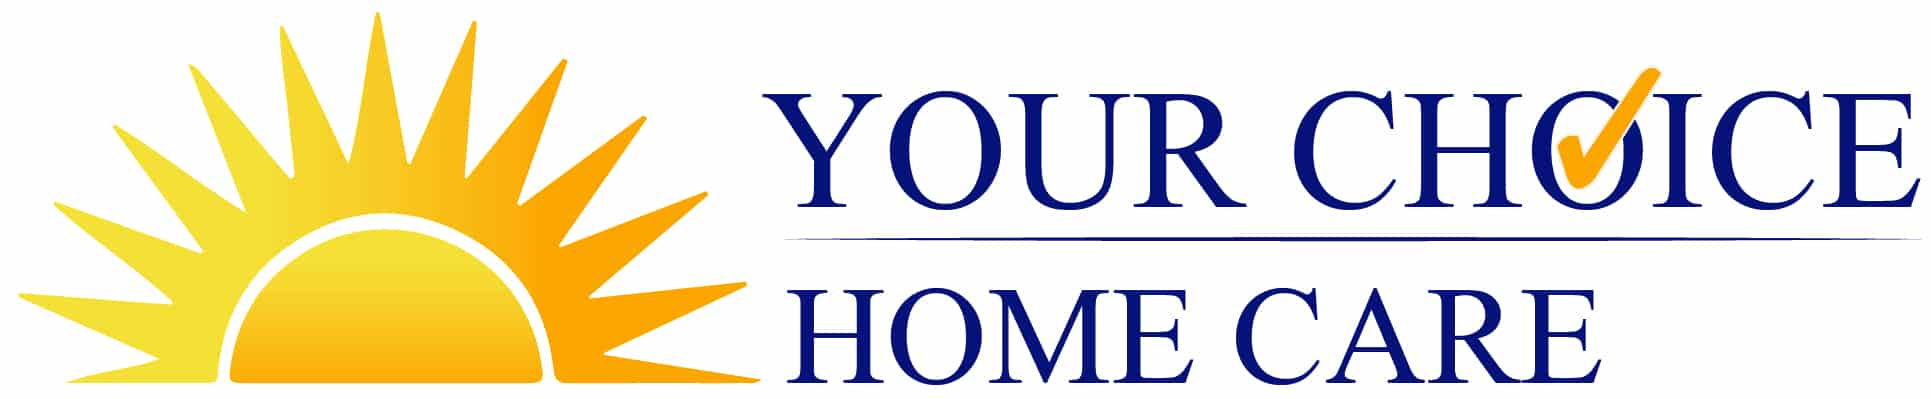 Your Choice Home Care Atlanta - Dekalb Home Health Is A Top Home Health Care Provider In Snellville